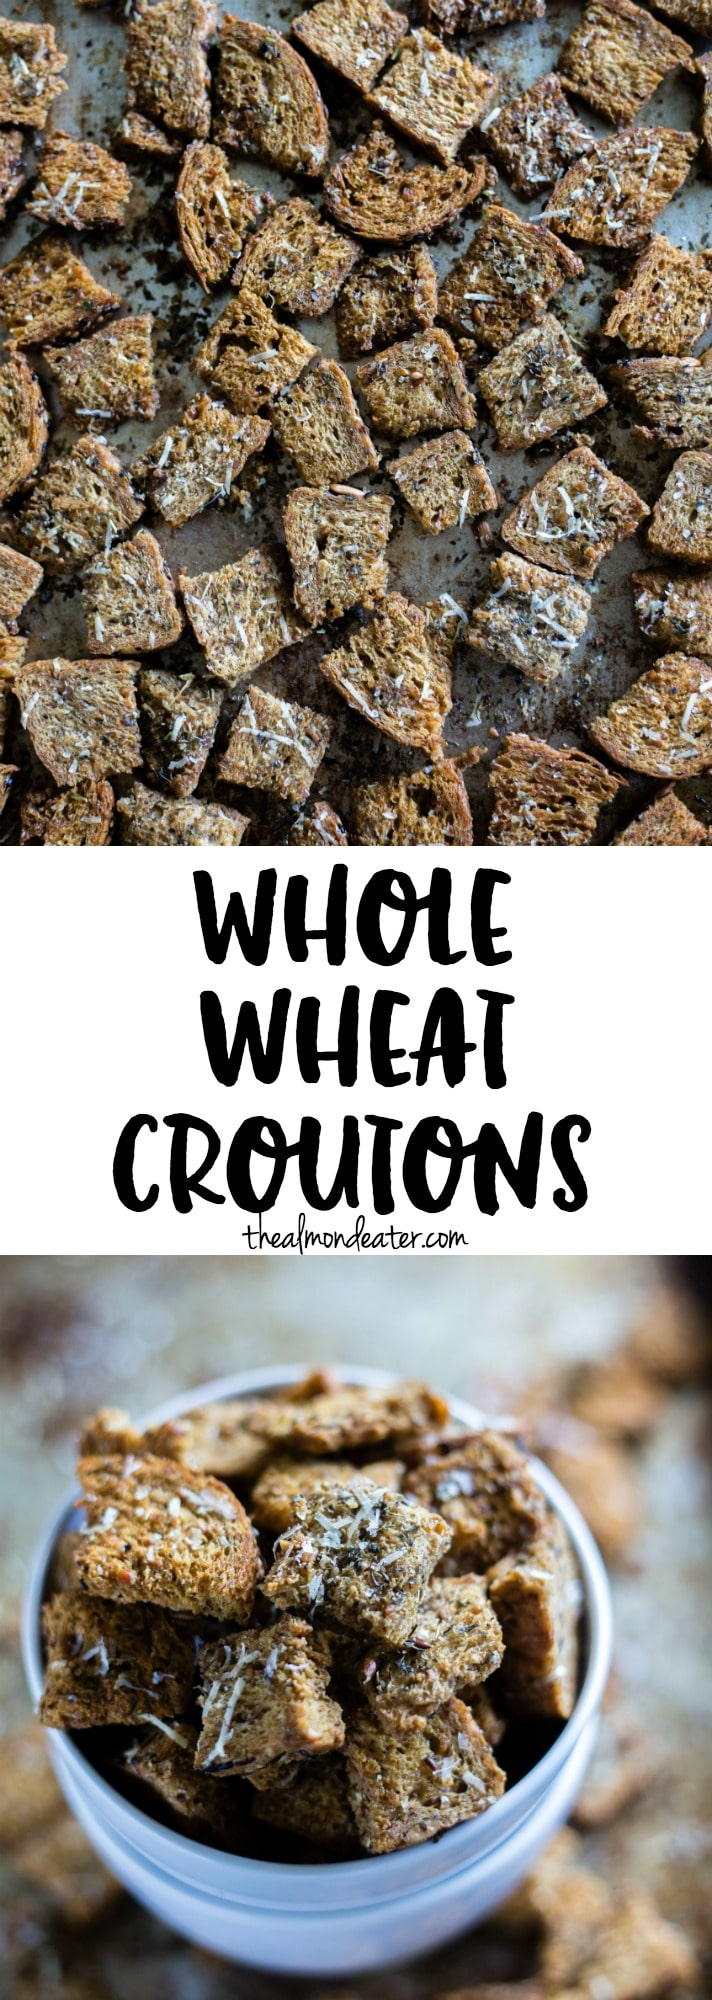 Whole Wheat Croutons | Croutons made with whole grain bread, seasoned with Italian seasoning and parmesan cheese and ready in 30 minutes! | thealmondeater.com